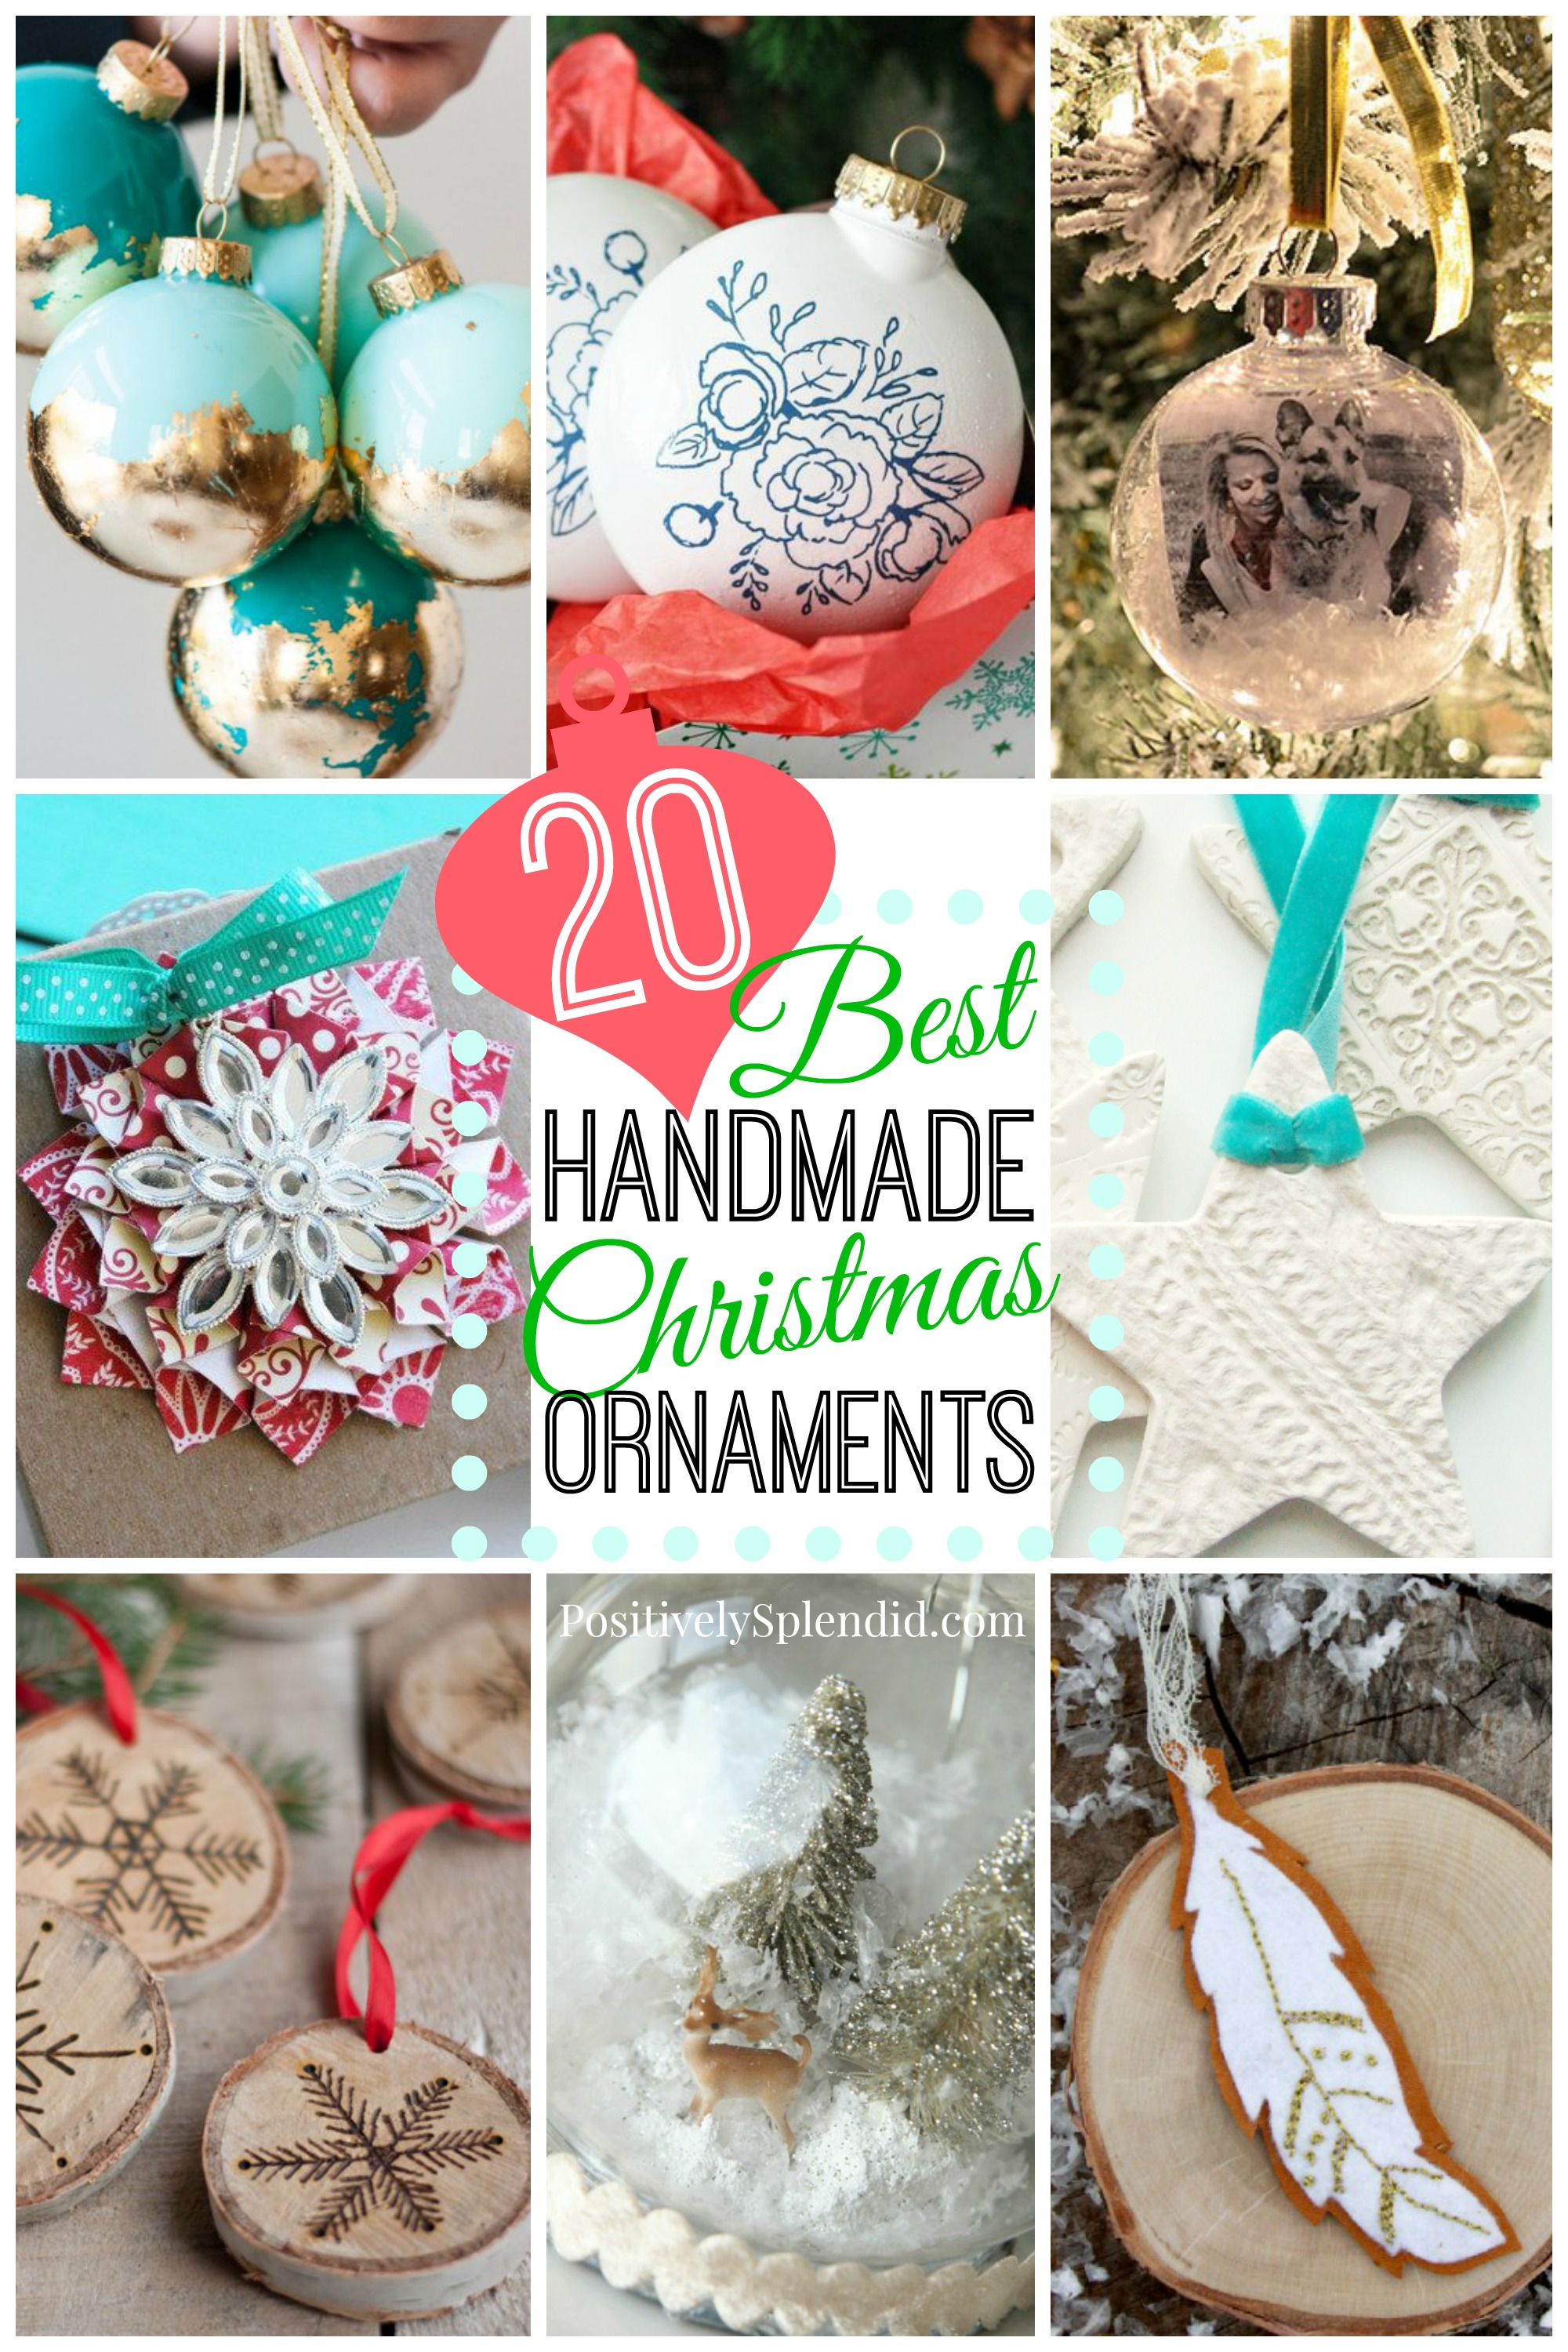 20 of the BEST DIY Christmas Ornaments! So many fabulous ideas!